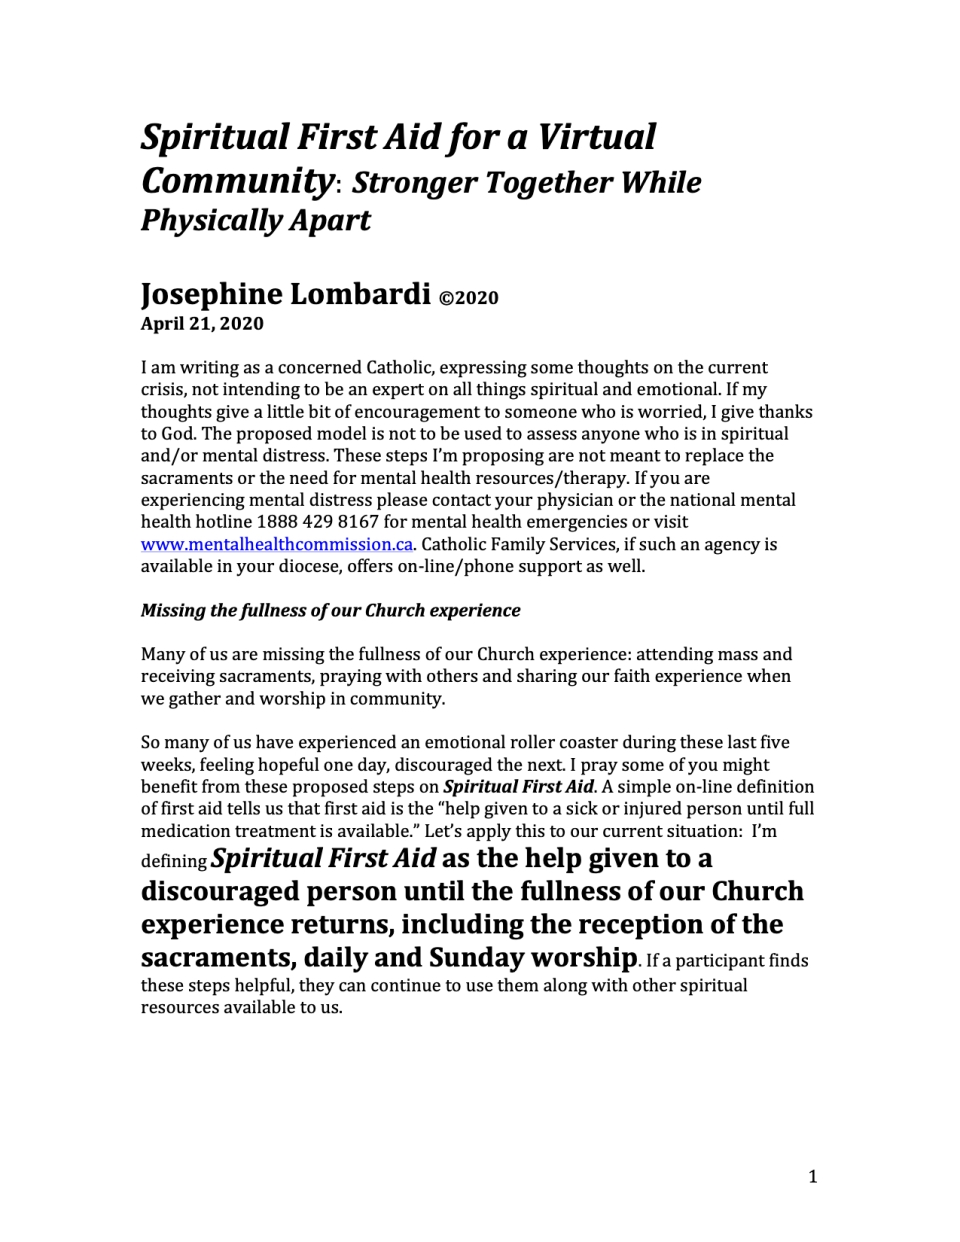 Spiritual First Aid for a Virtual Community: Stronger Together While Physically Apart Josephine Lombardi ©2020 April 21, 2020